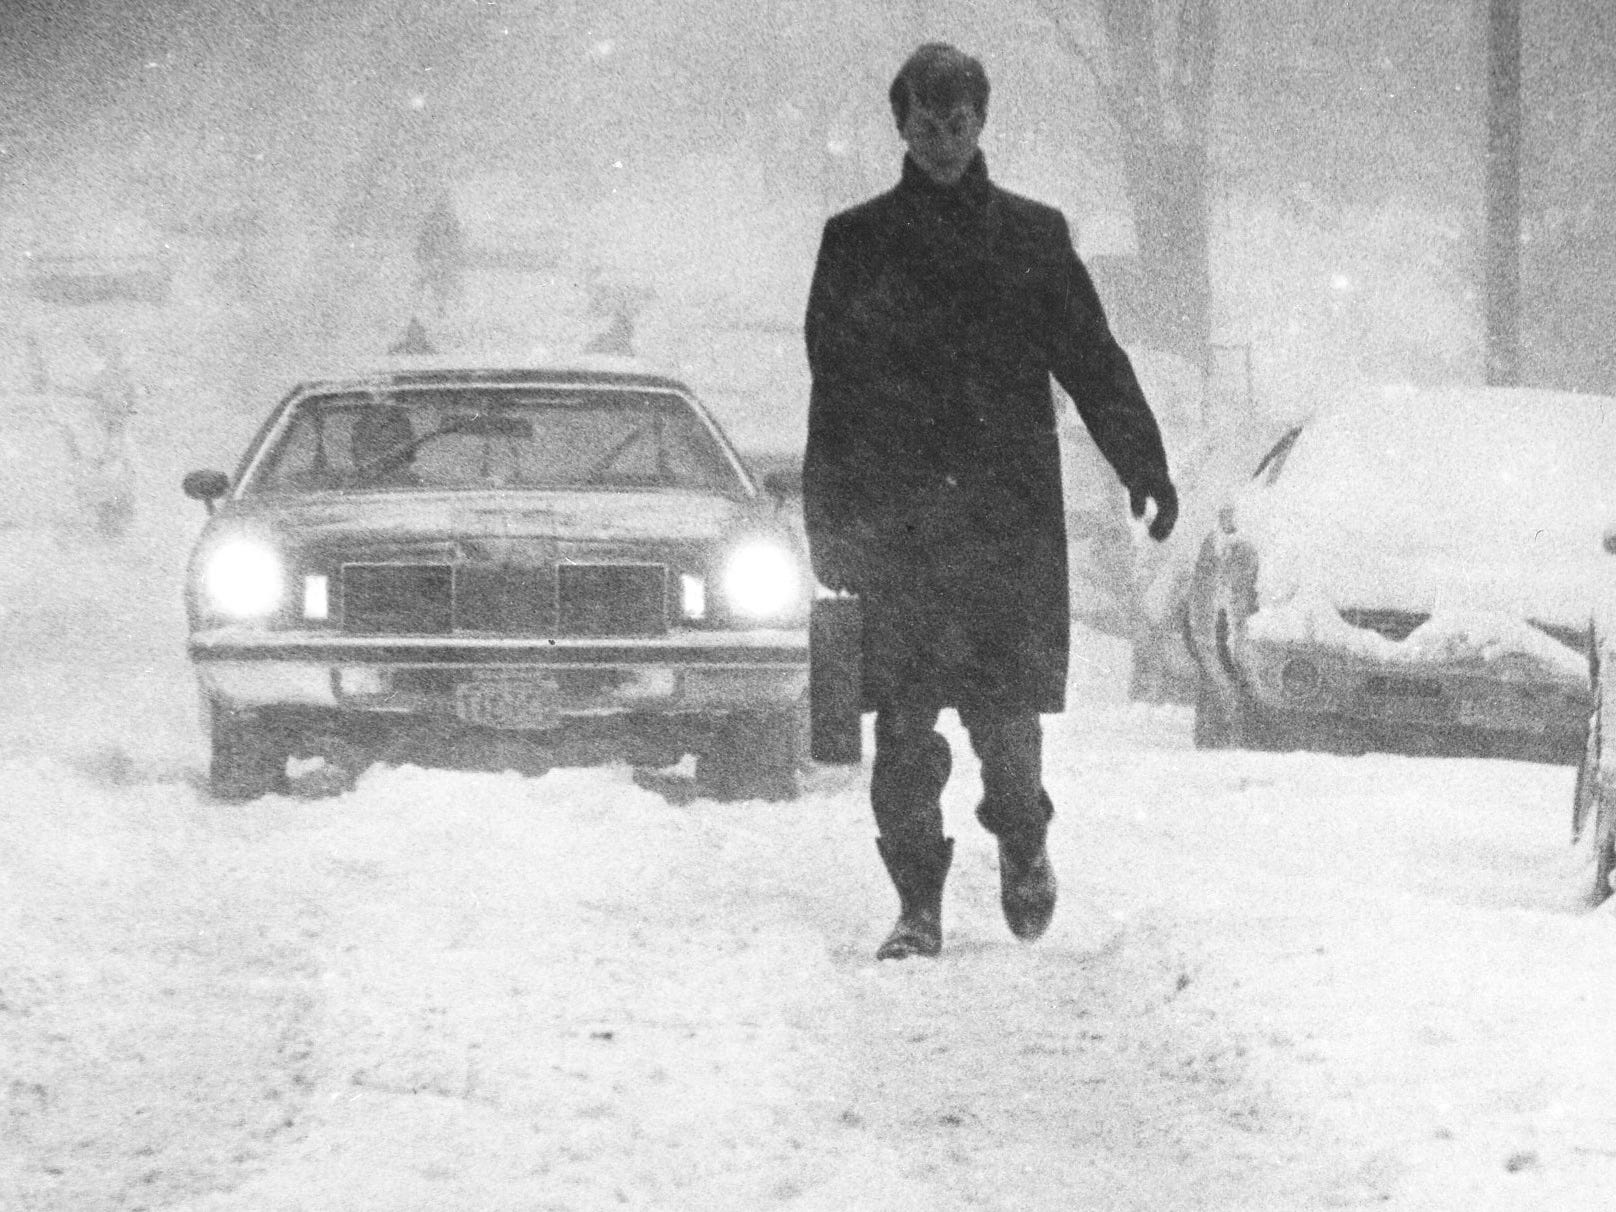 Briefcase in hand, Thomas Wilson II shares North Marshall Street with downtown morning-rush traffic on Jan. 24, 1979. That morning, Milwaukee got its third major snowstorm in less than a month. This photo was published in the Jan. 24, 1979, Milwaukee Journal.